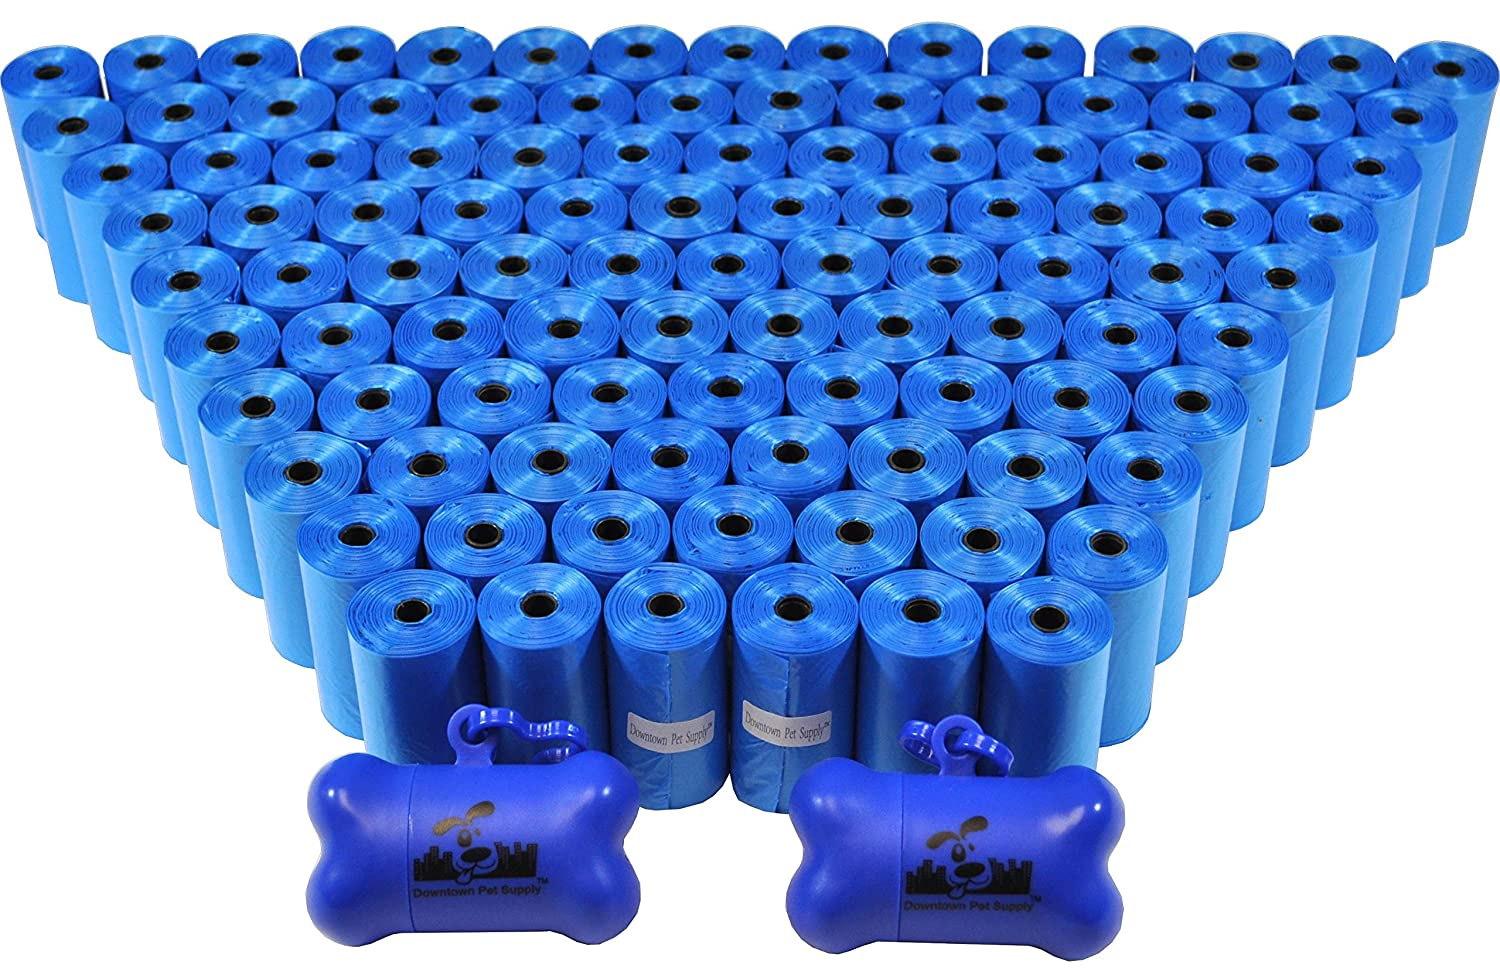 bluee 2200 Bags bluee 2200 Bags Downtown Pet Supply Dog Pet Waste Bags with Two Free Leash Clips and Dispensers, 2200 Bags, bluee